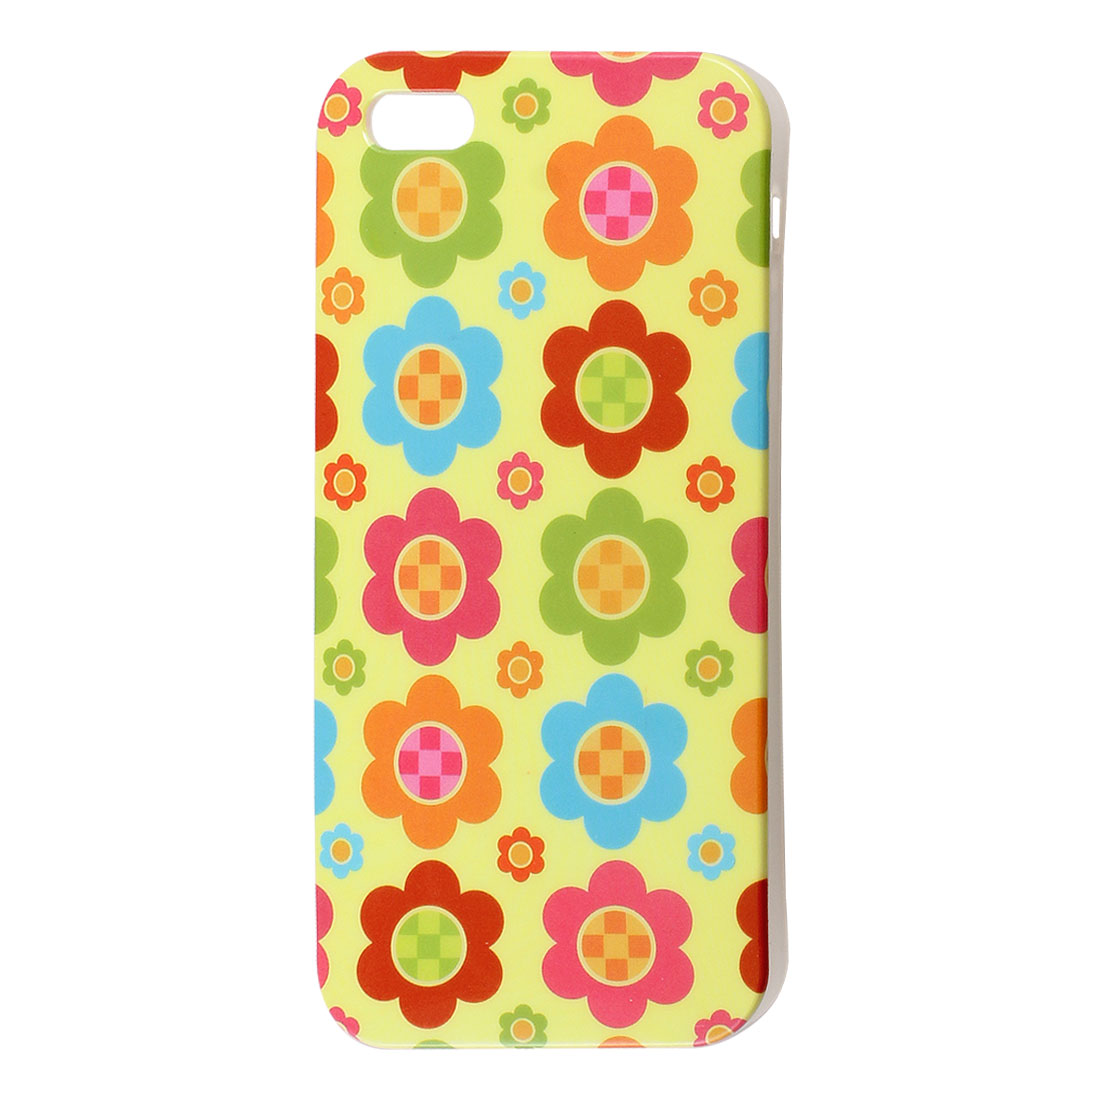 Multicolor Flowers TPU Phone Case Cover for Apple iPhone 5 5G